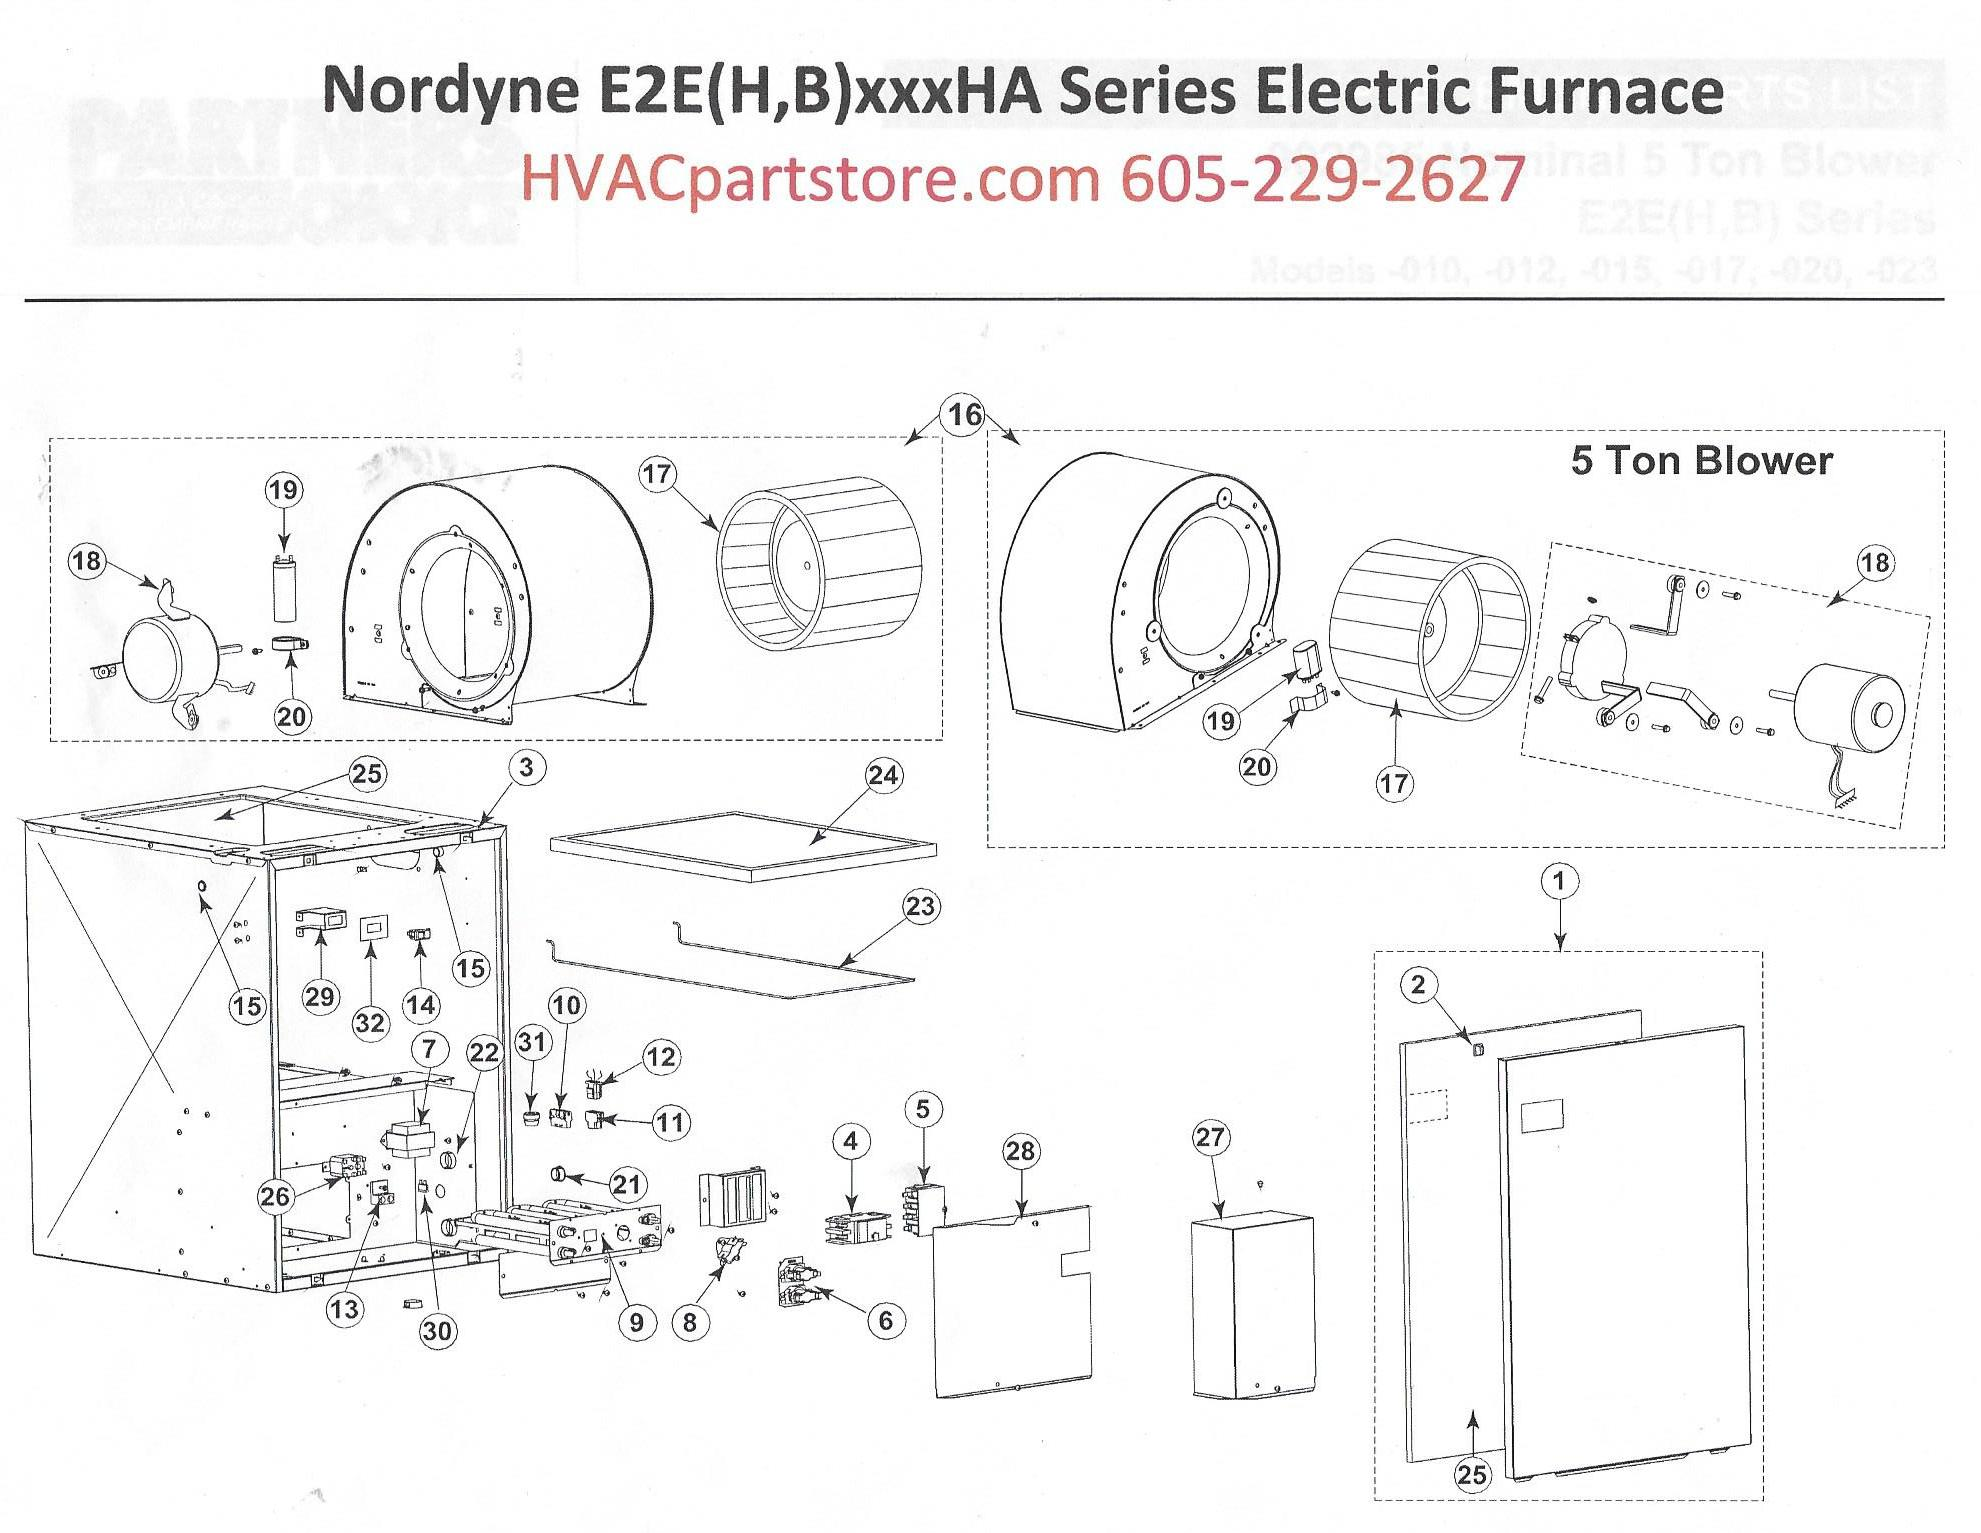 Nordyne Contactor Wiring Diagram Manual E Books Intertherm 015h E2eb020hb Electric Furnace Parts U2013 Hvacpartstoreclick Here To View A Listing For The Which Includes Partial Diagrams